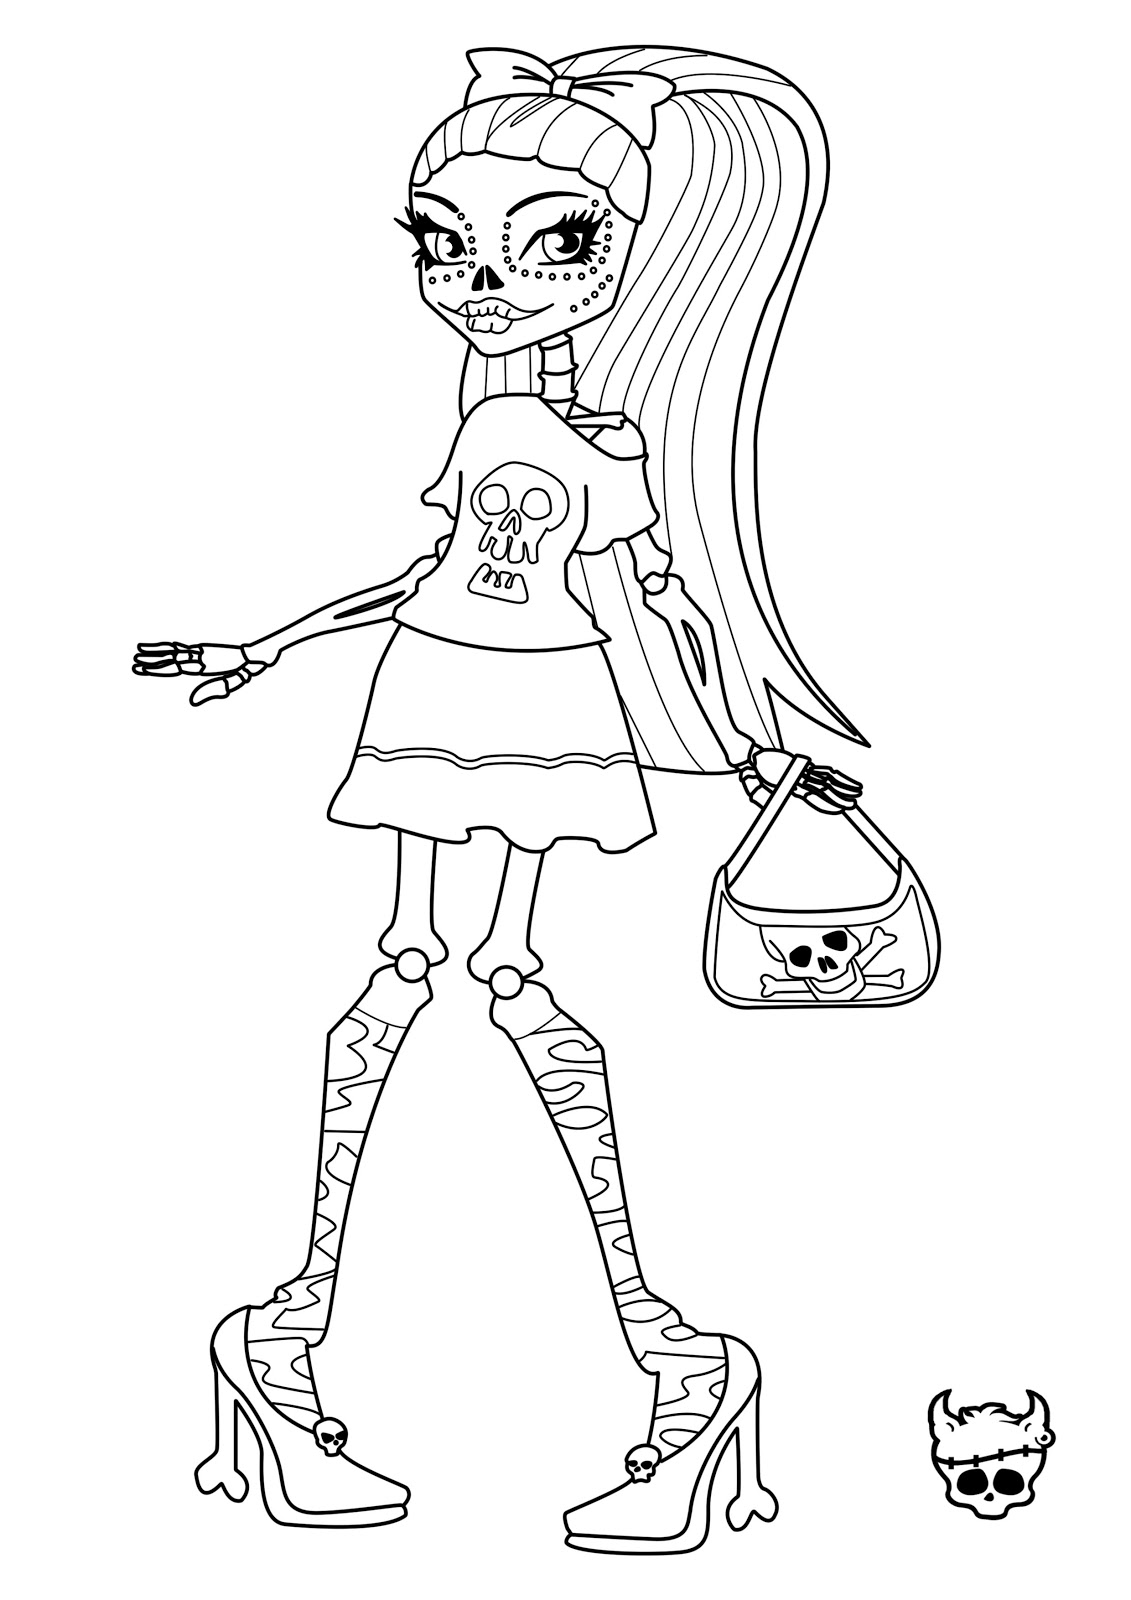 free printable monster high coloring pages free printable monster high coloring pages coloring pages high coloring printable monster pages free